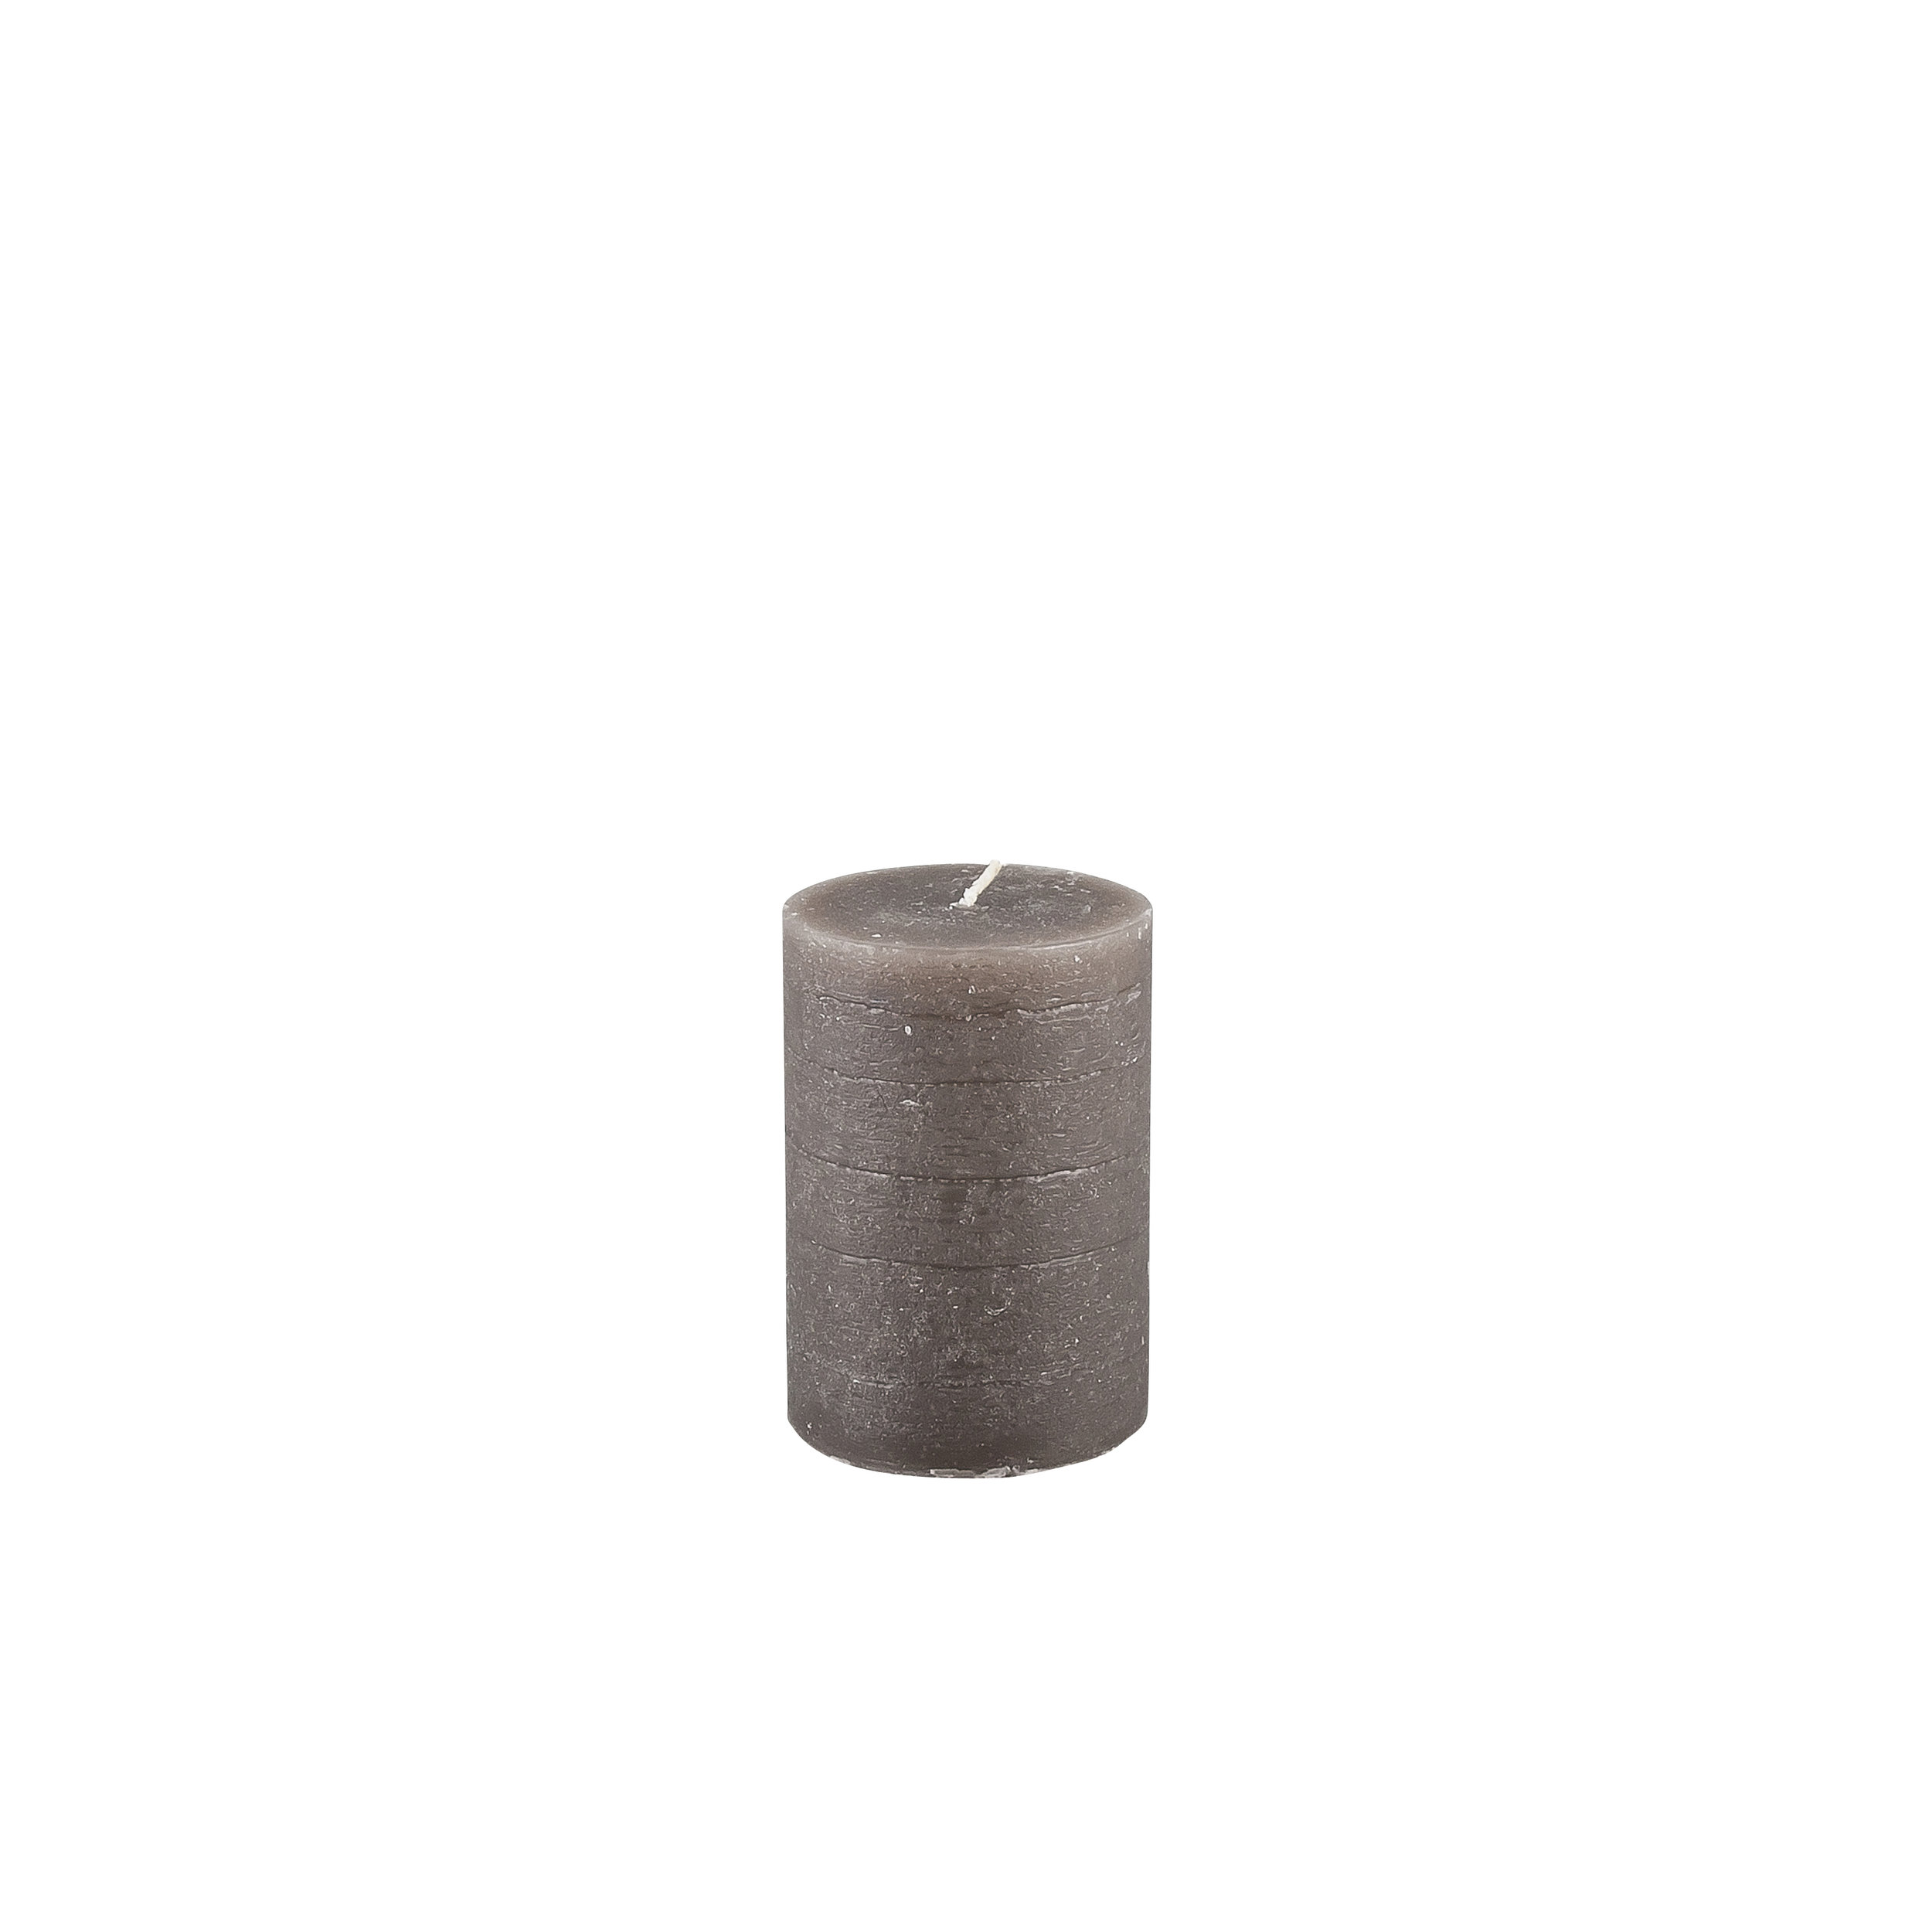 Rustic candle from £5